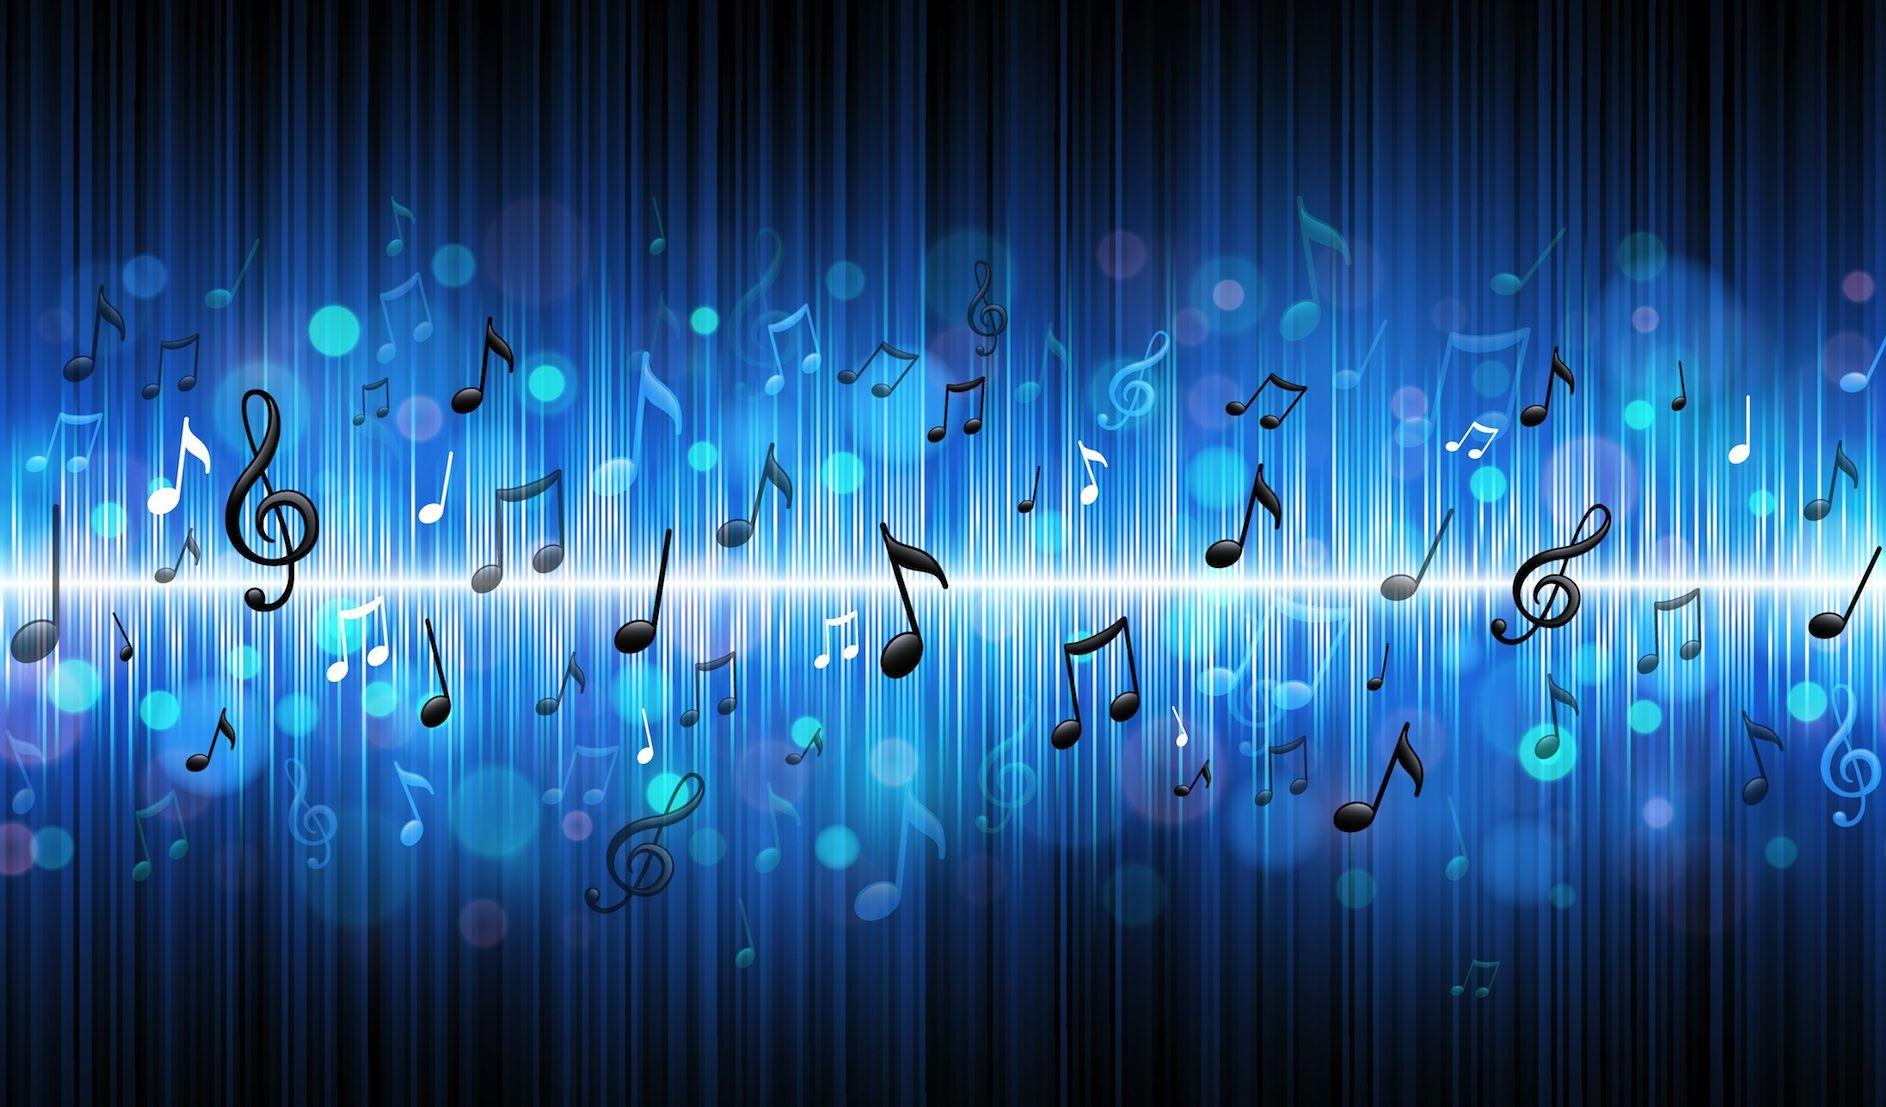 Blue Music Notes Widescreen Wallpapers